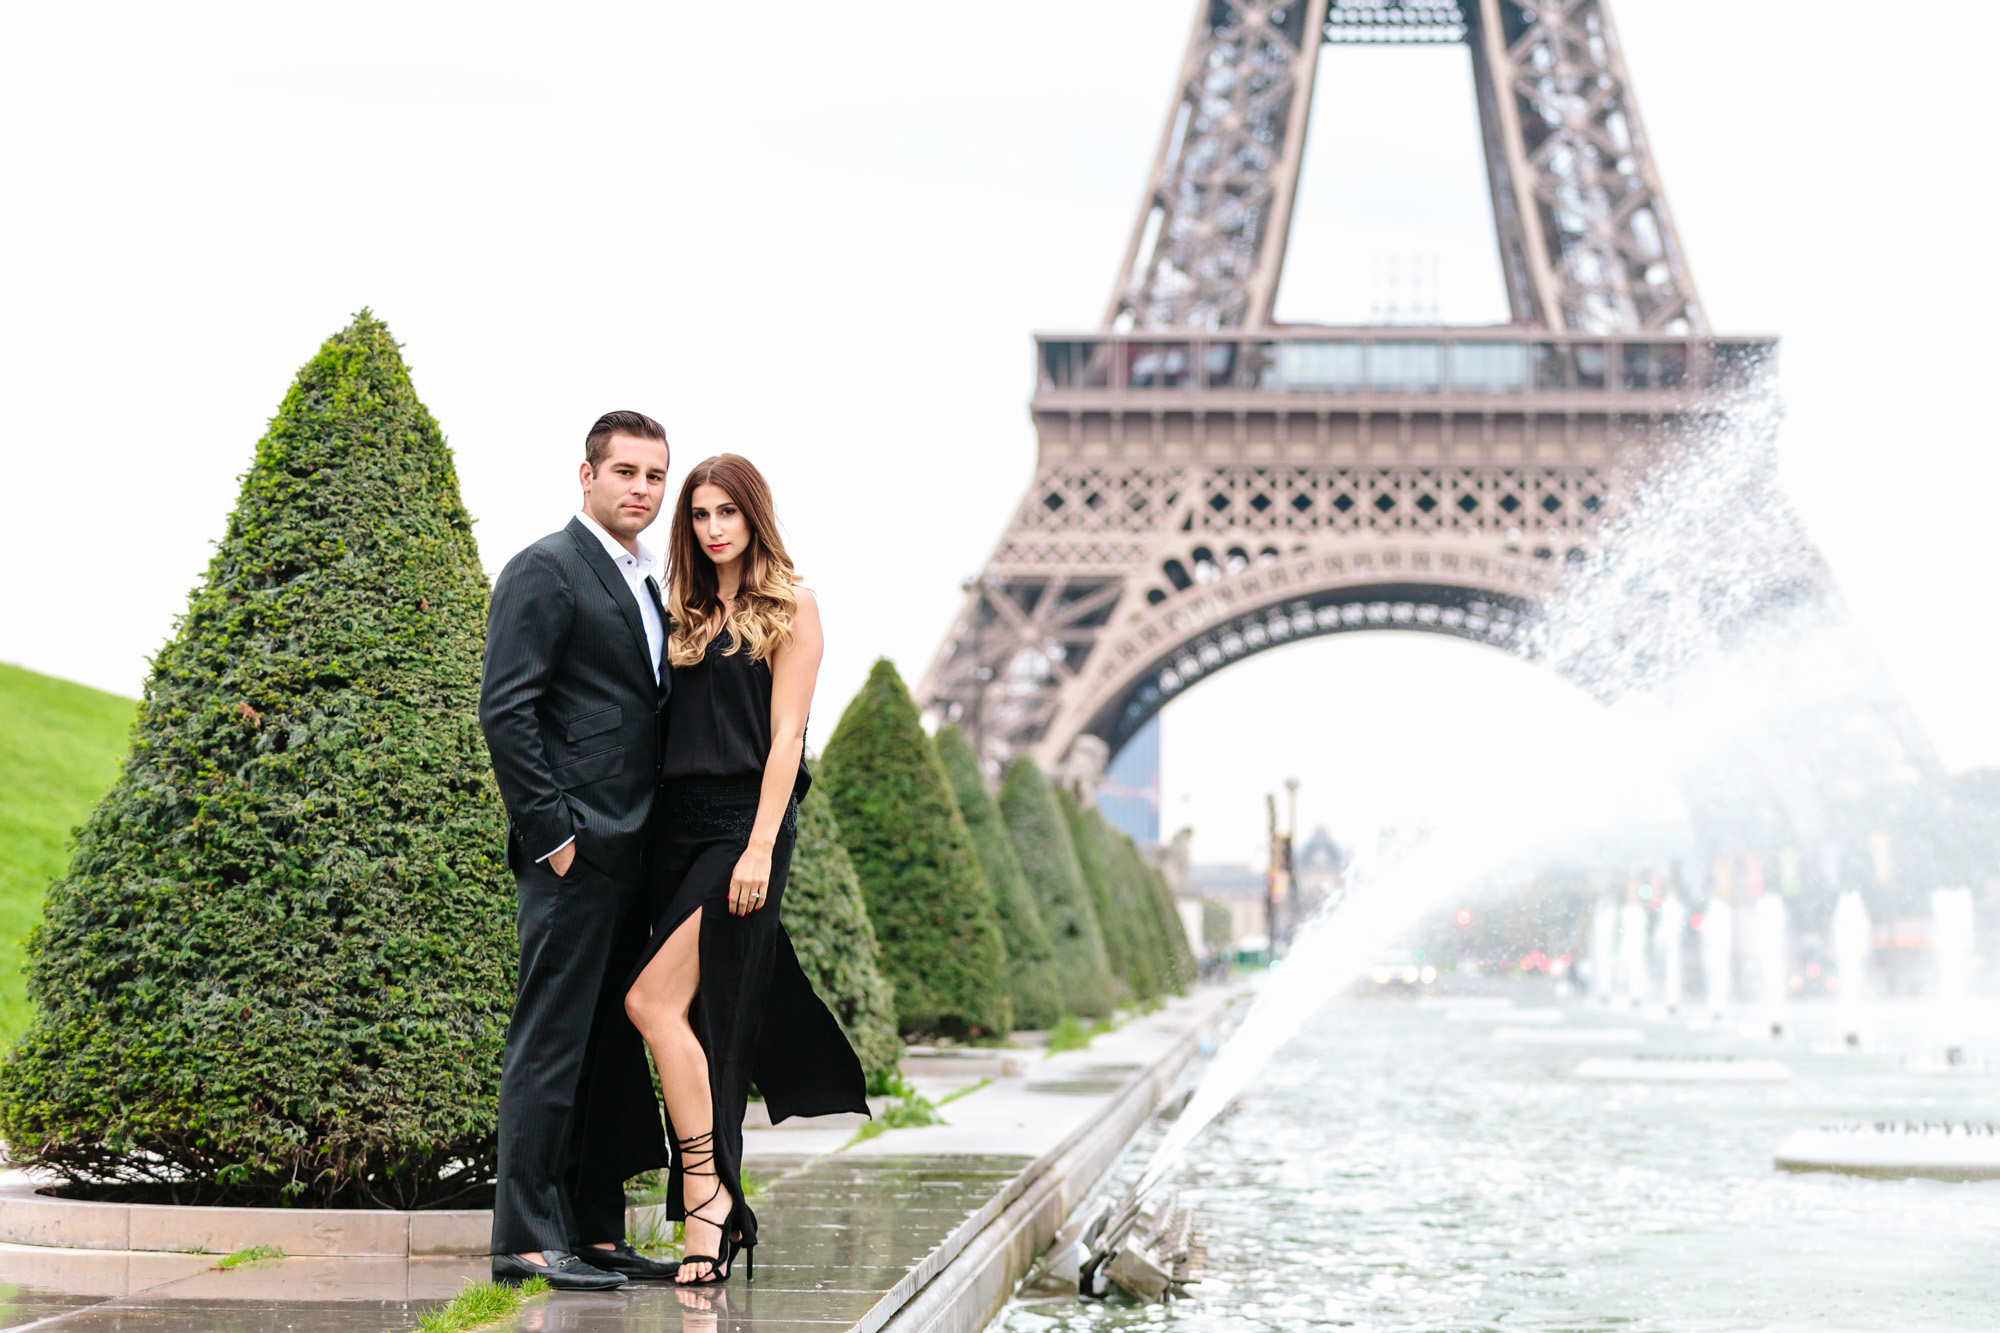 Photographer in Paris Travel Love story Eiffel Tower Couple Sesssion IheartParisfr